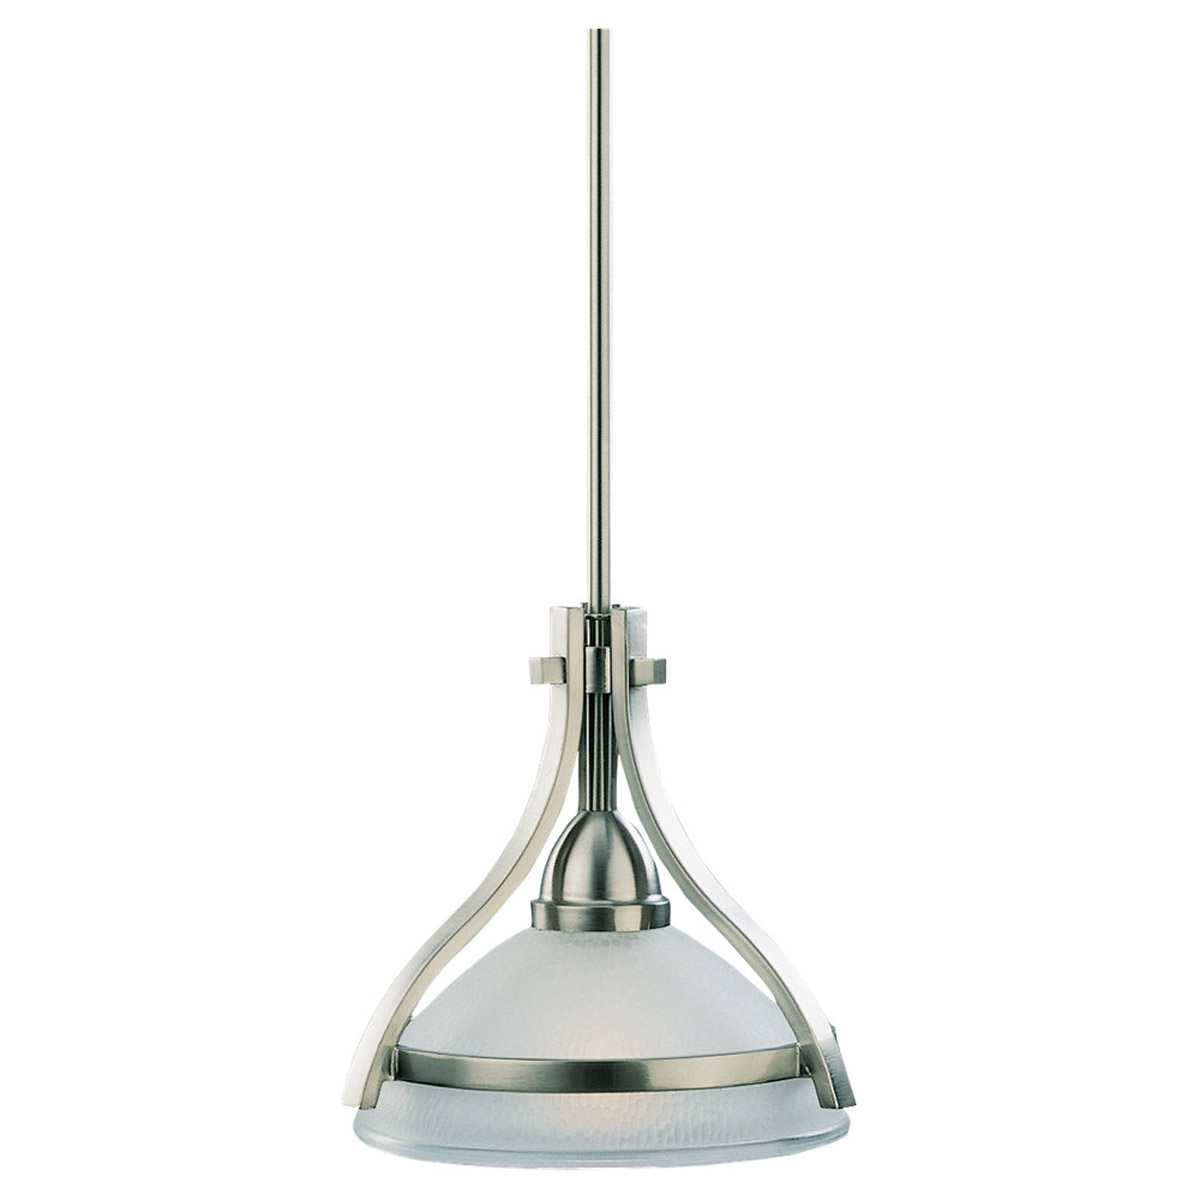 Sea Gull Lighting Eternity 1 Light Mini Pendant in Brushed Nickel 61115-962